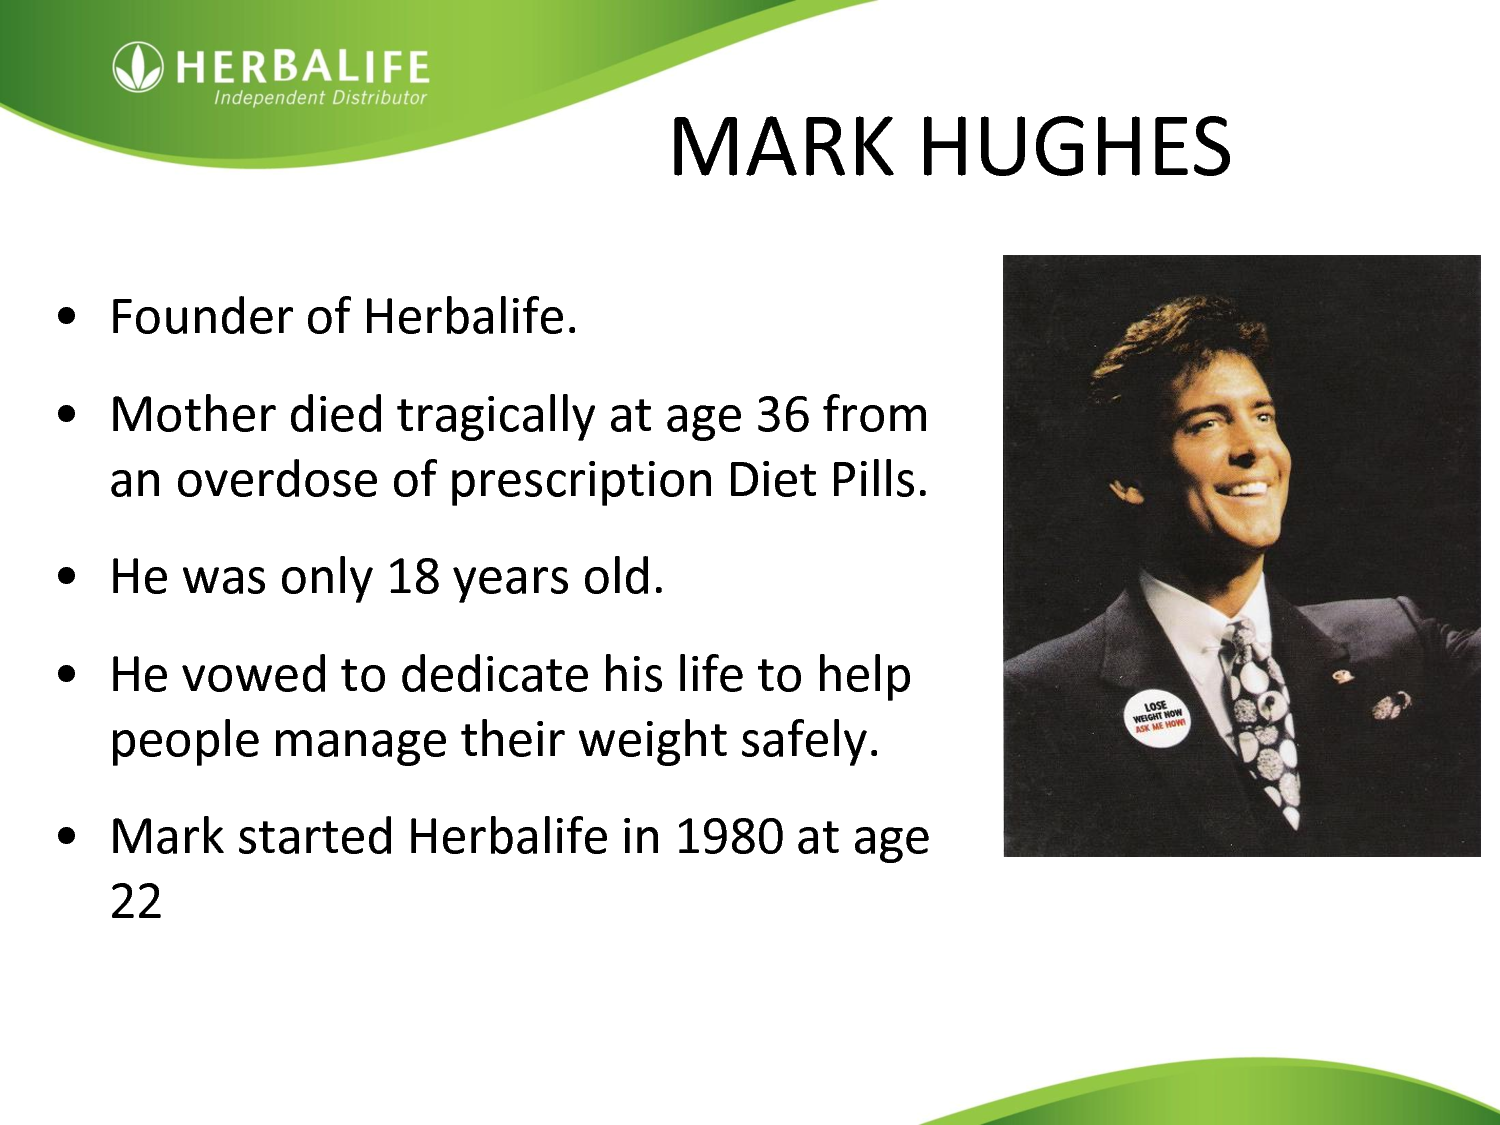 Mark Hughes Herbalife Quotes. QuotesGram